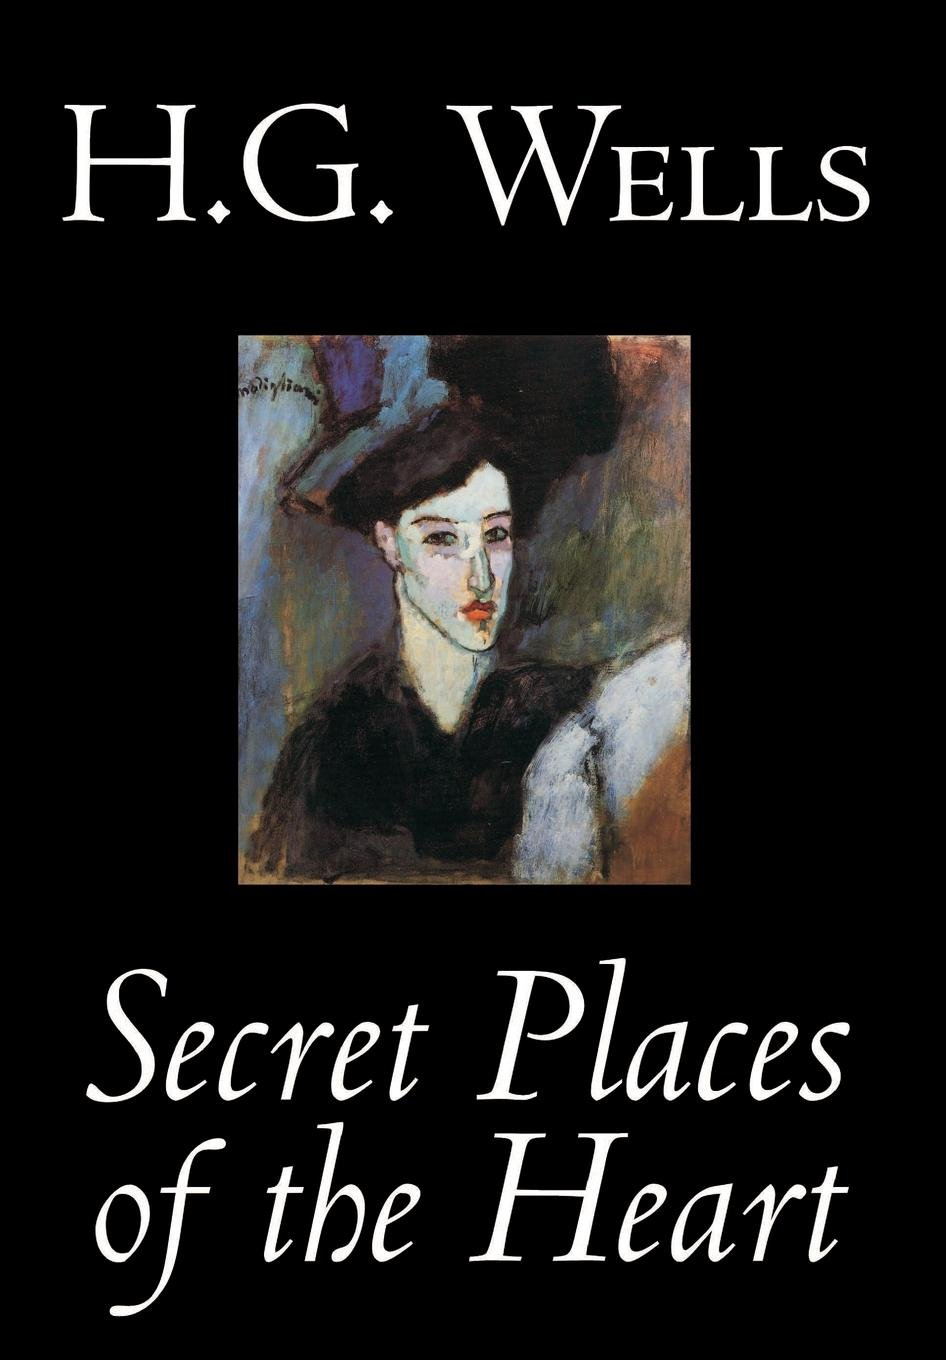 Download Secret Places of the Heart by H. G. Wells, Fiction, Classics PDF